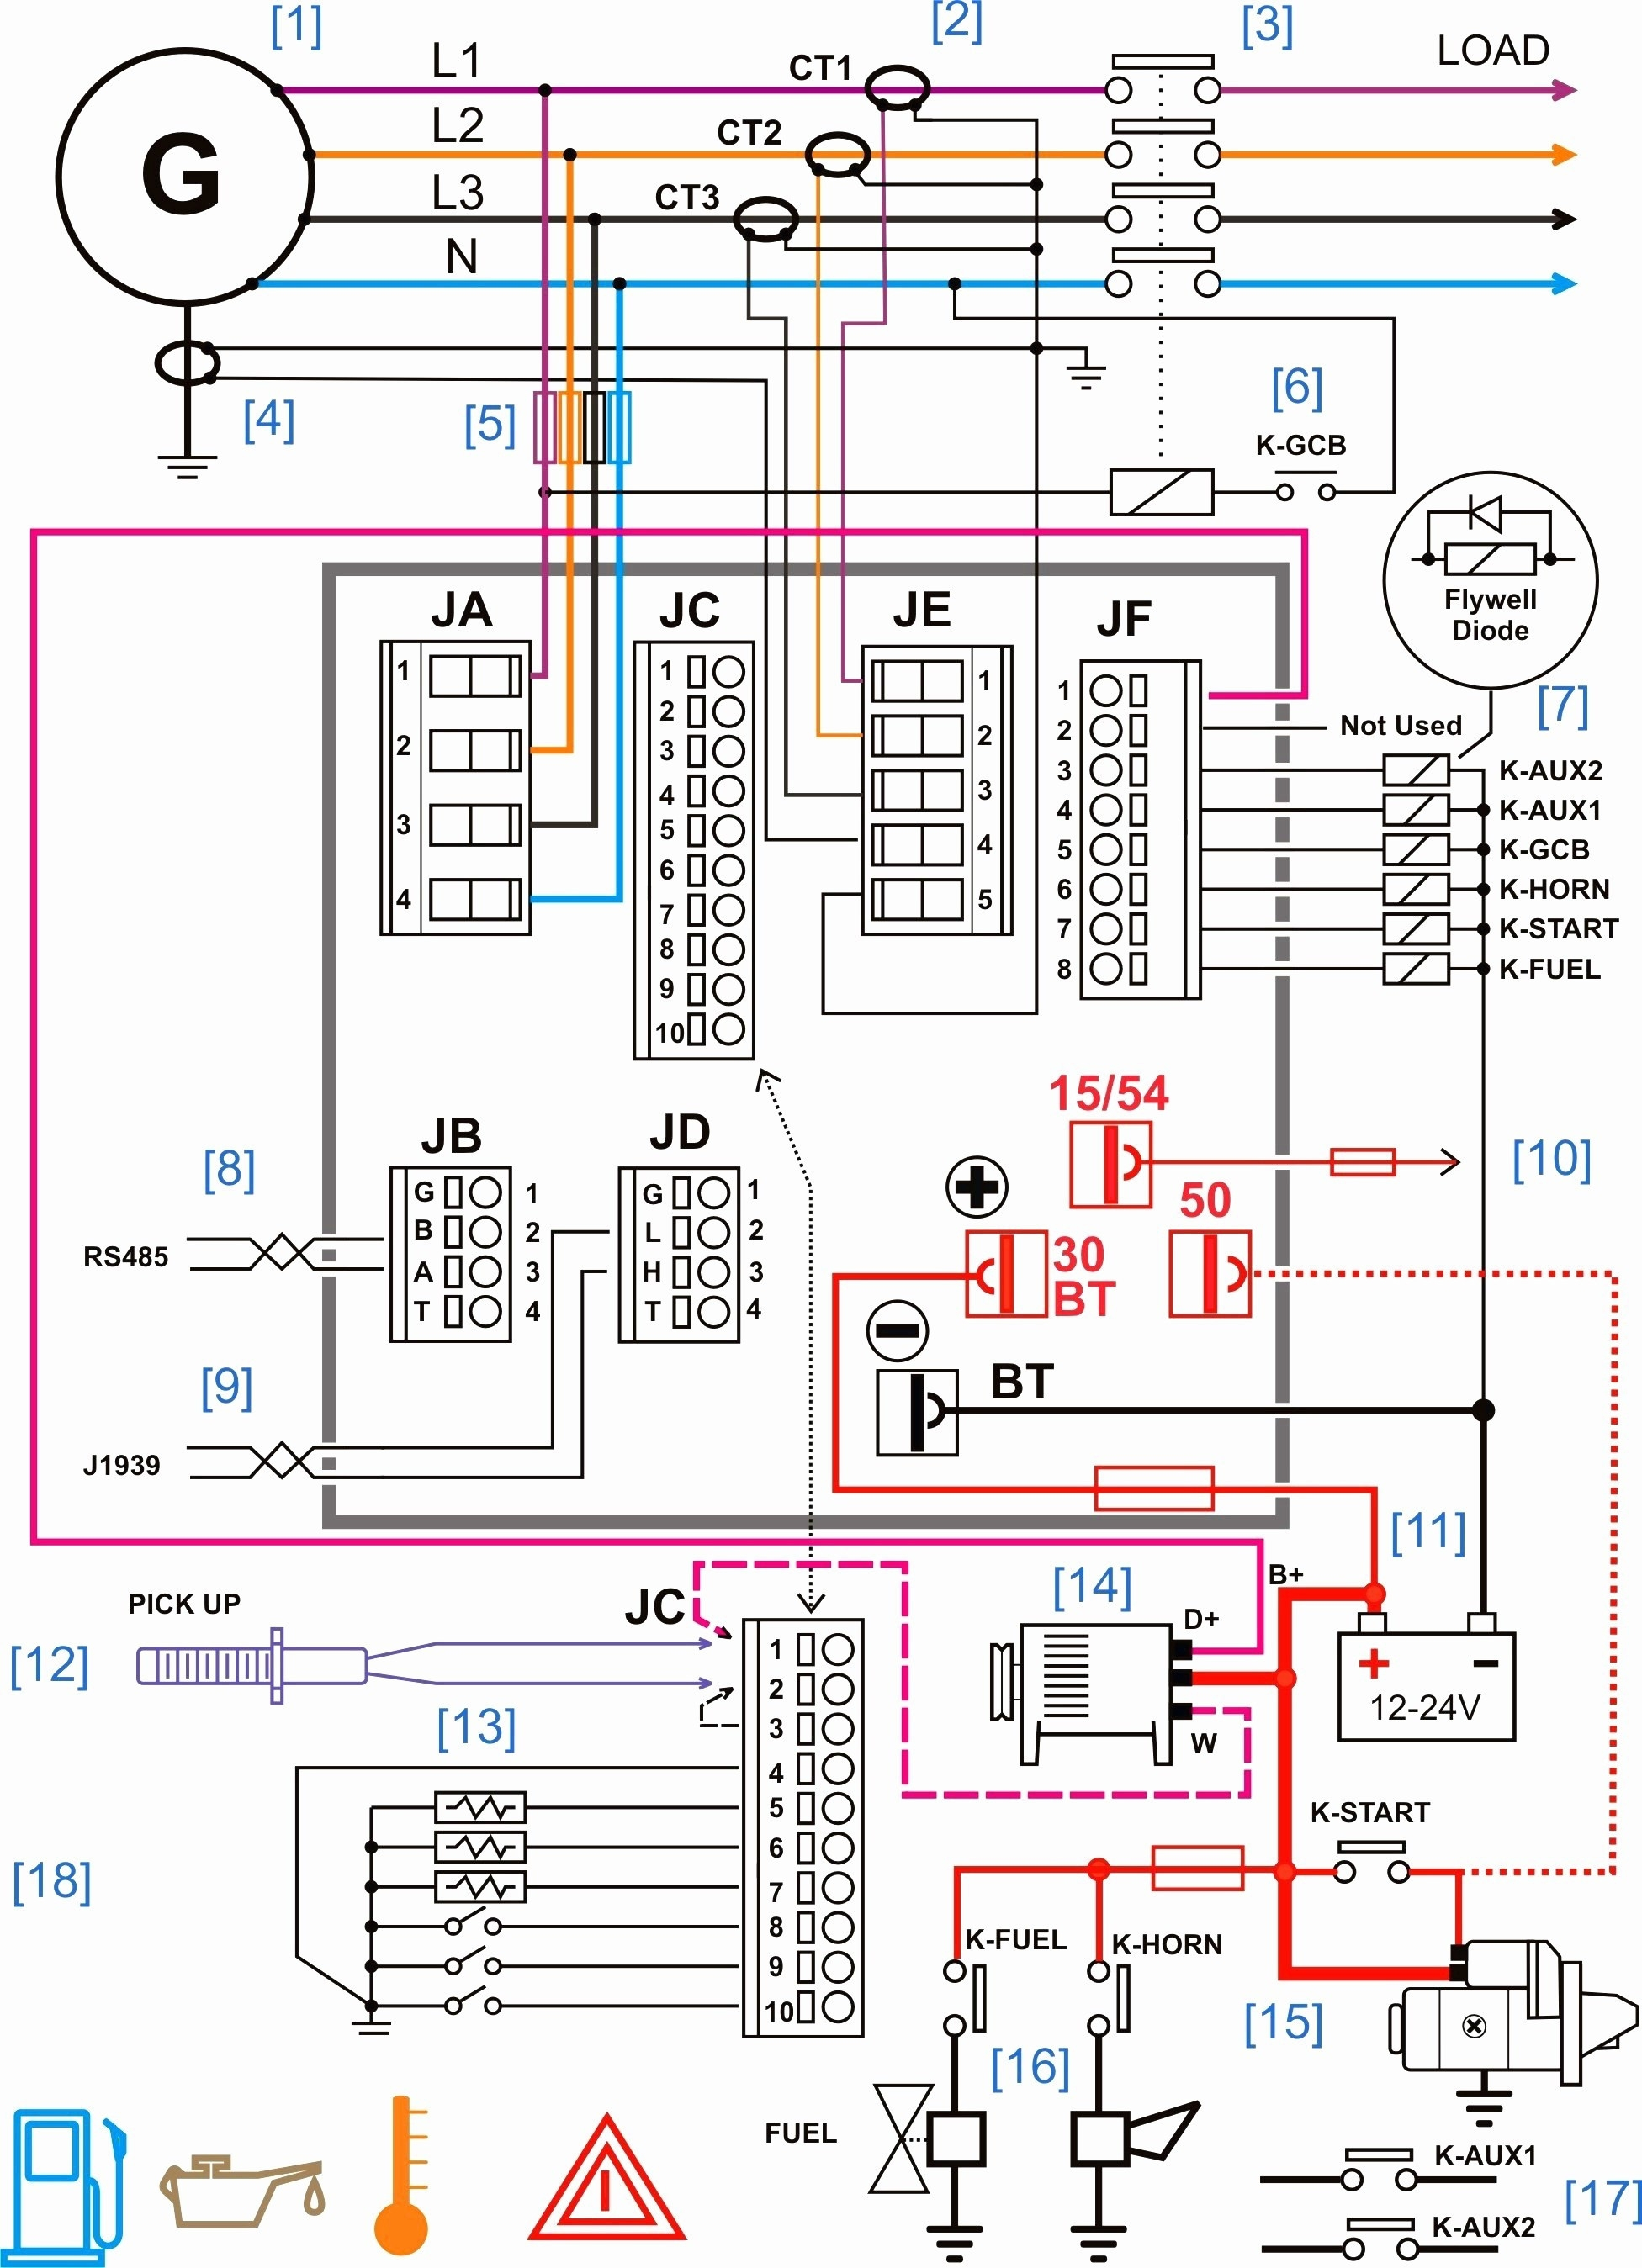 ooma wiring diagram - basic automotive wiring diagram valid automotive  wiring diagram line free vehicle wiring